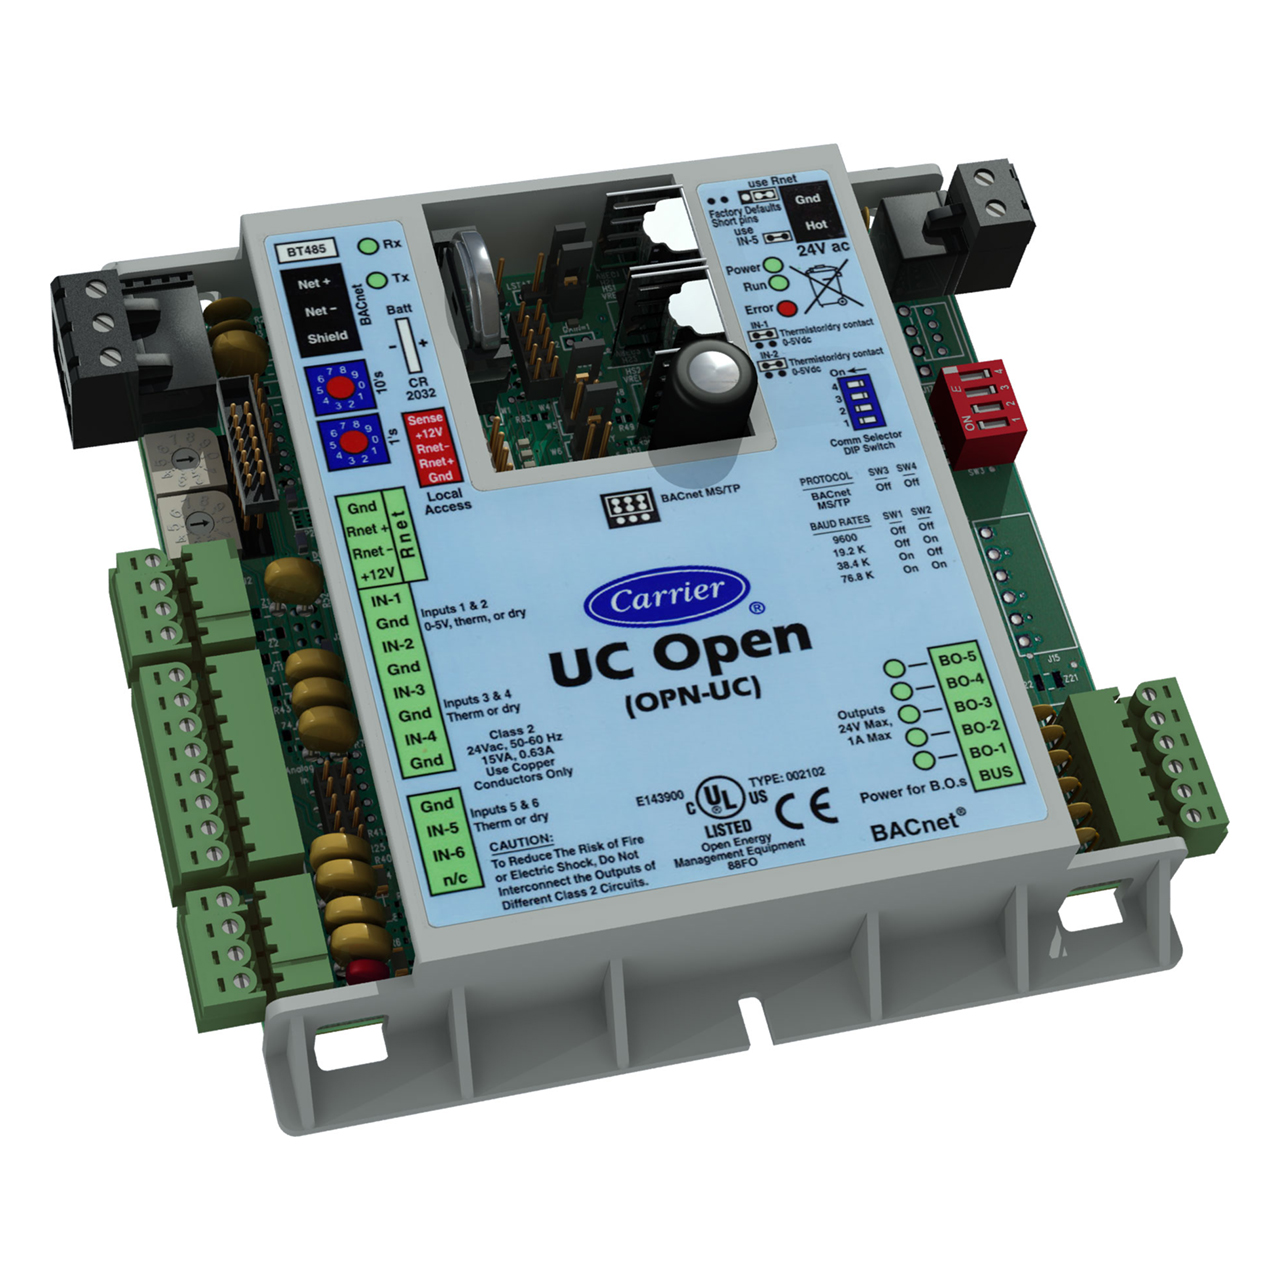 carrier-OPN-UC-ivu-uc-open